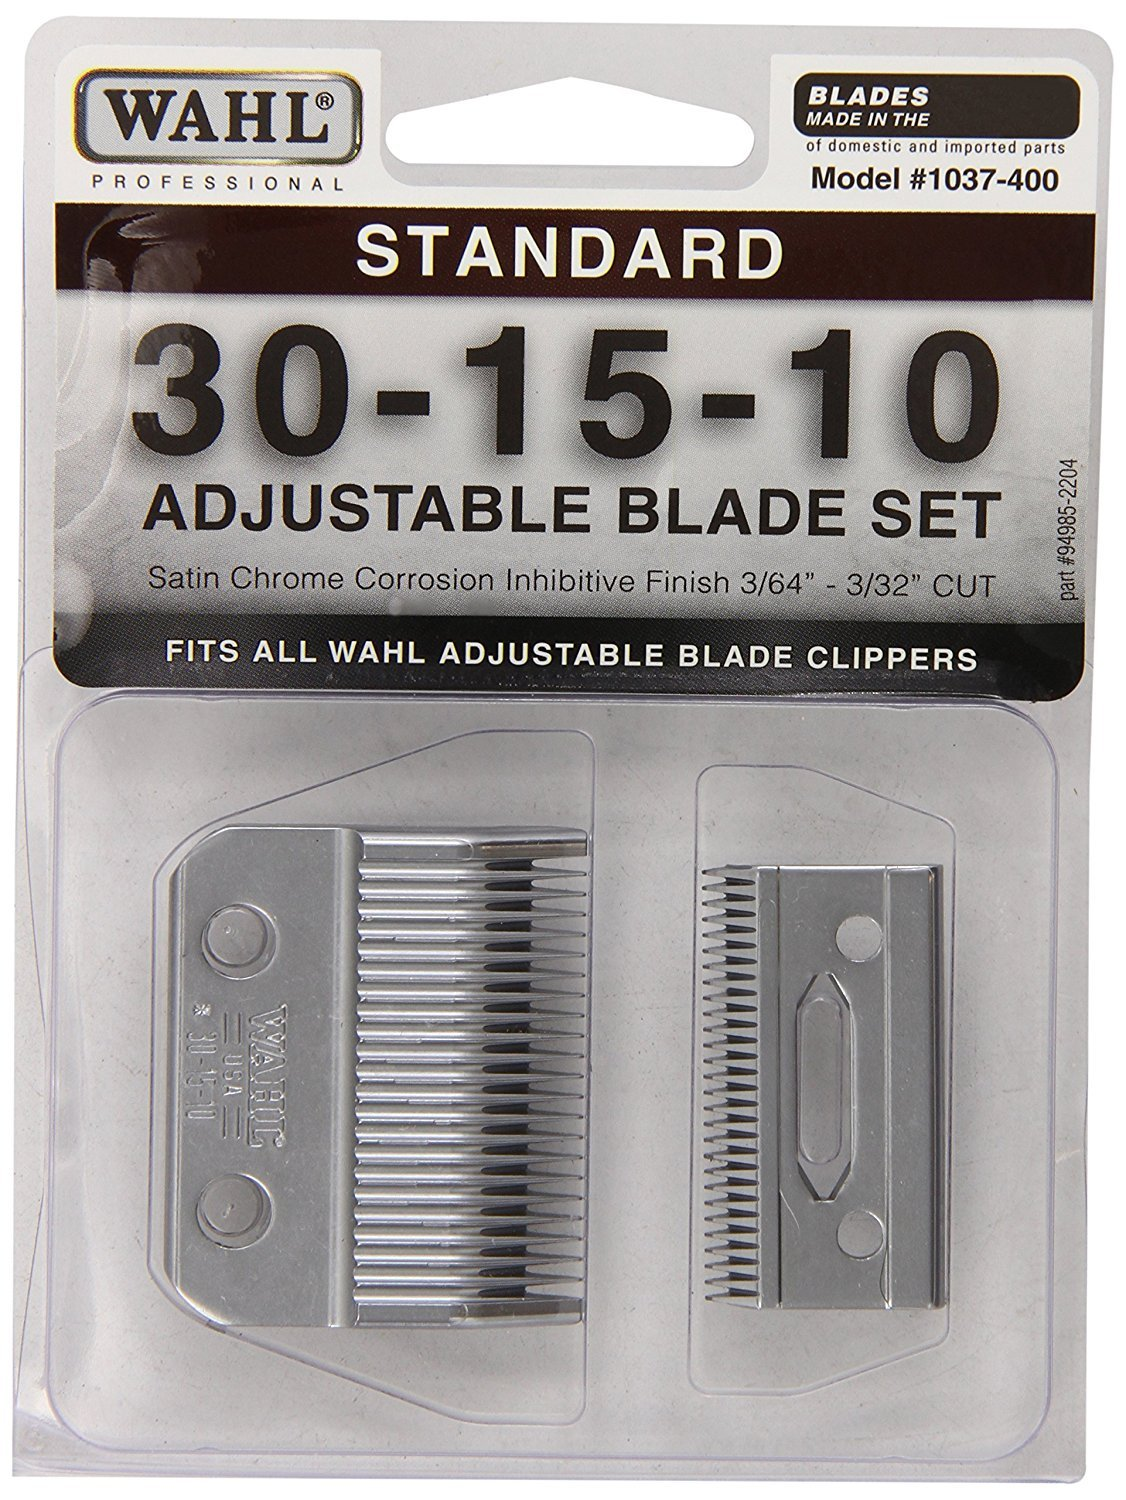 Wahl Professional 1037-400 Standard Adjustable Replacement Blade Set, 30-15-10 with Bonus Blade Brush by Wahl (Image #1)